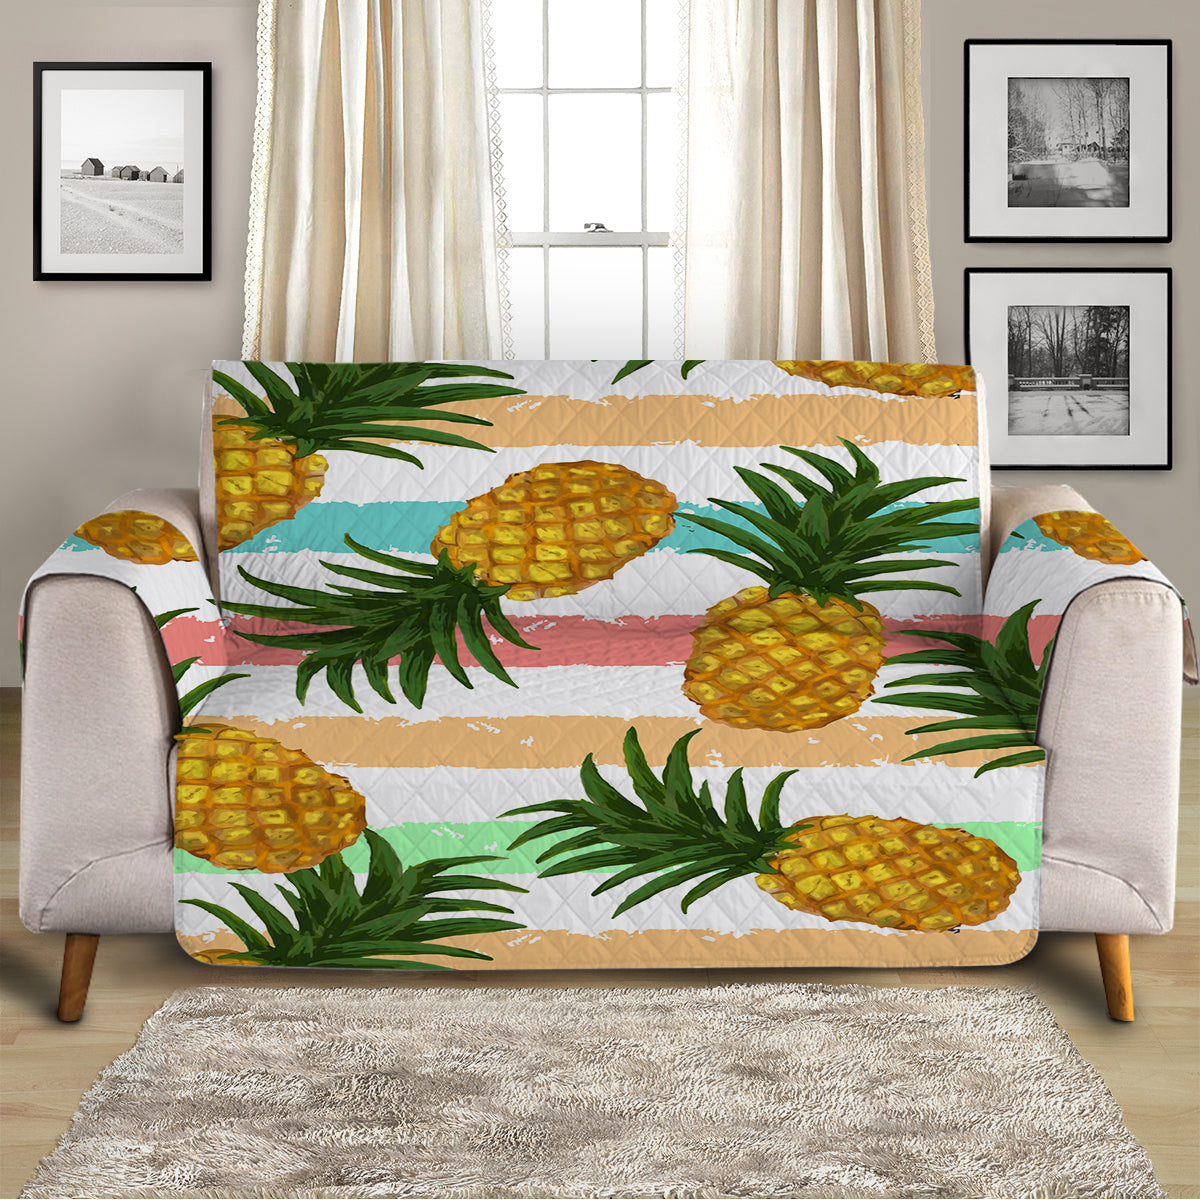 Pineapple Party Sofa Cover